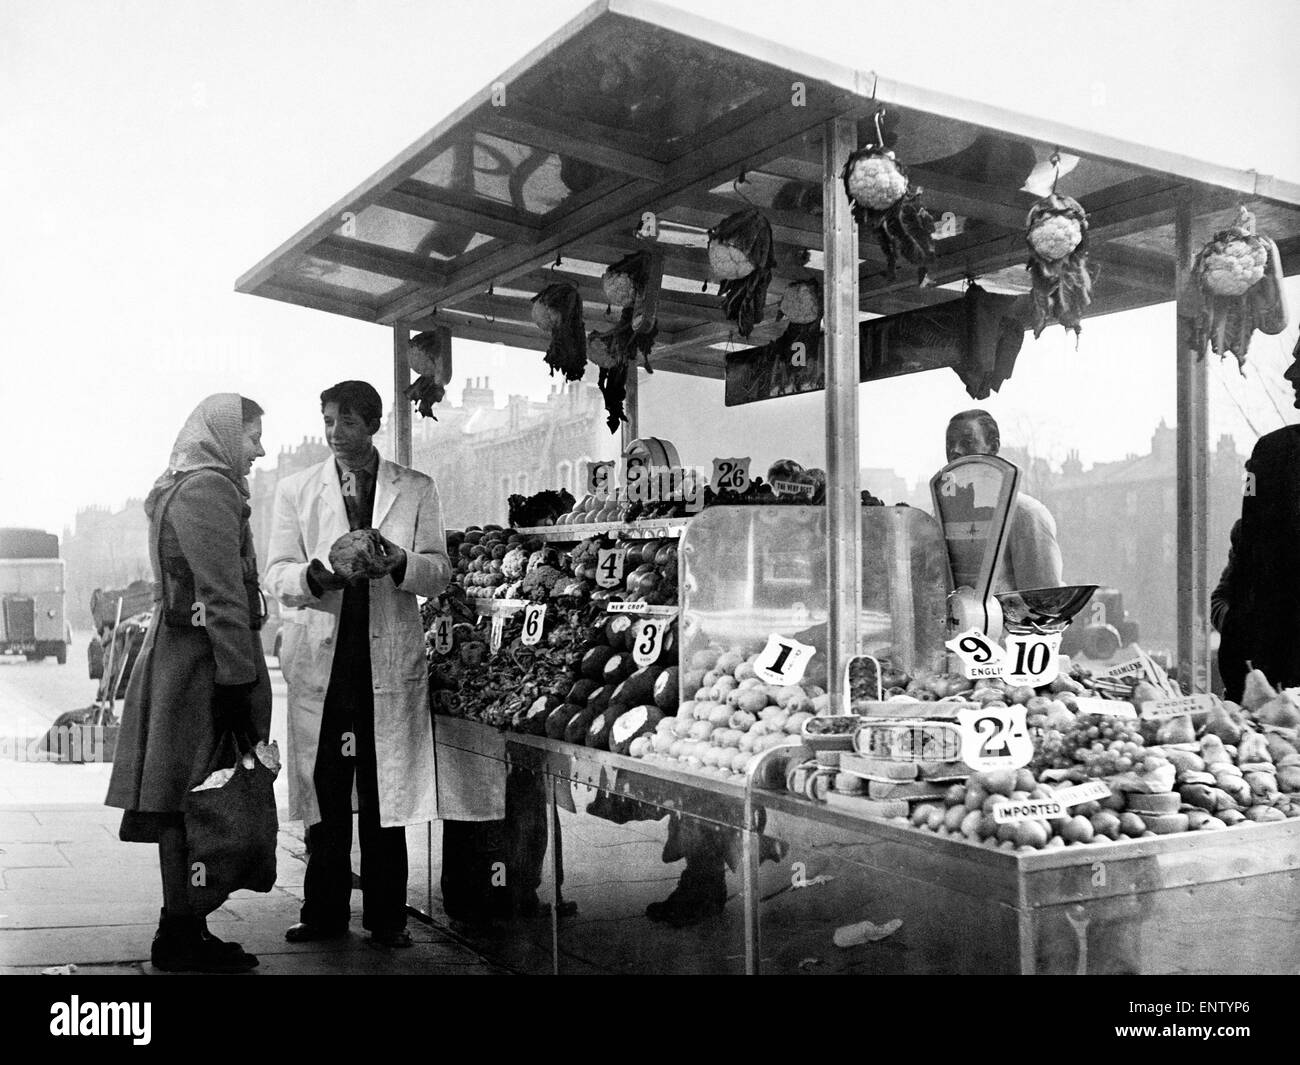 De-Luxe Street Stall. Takings doubled when de-lux street stall opened for business in London. Instead of wooden - Stock Image